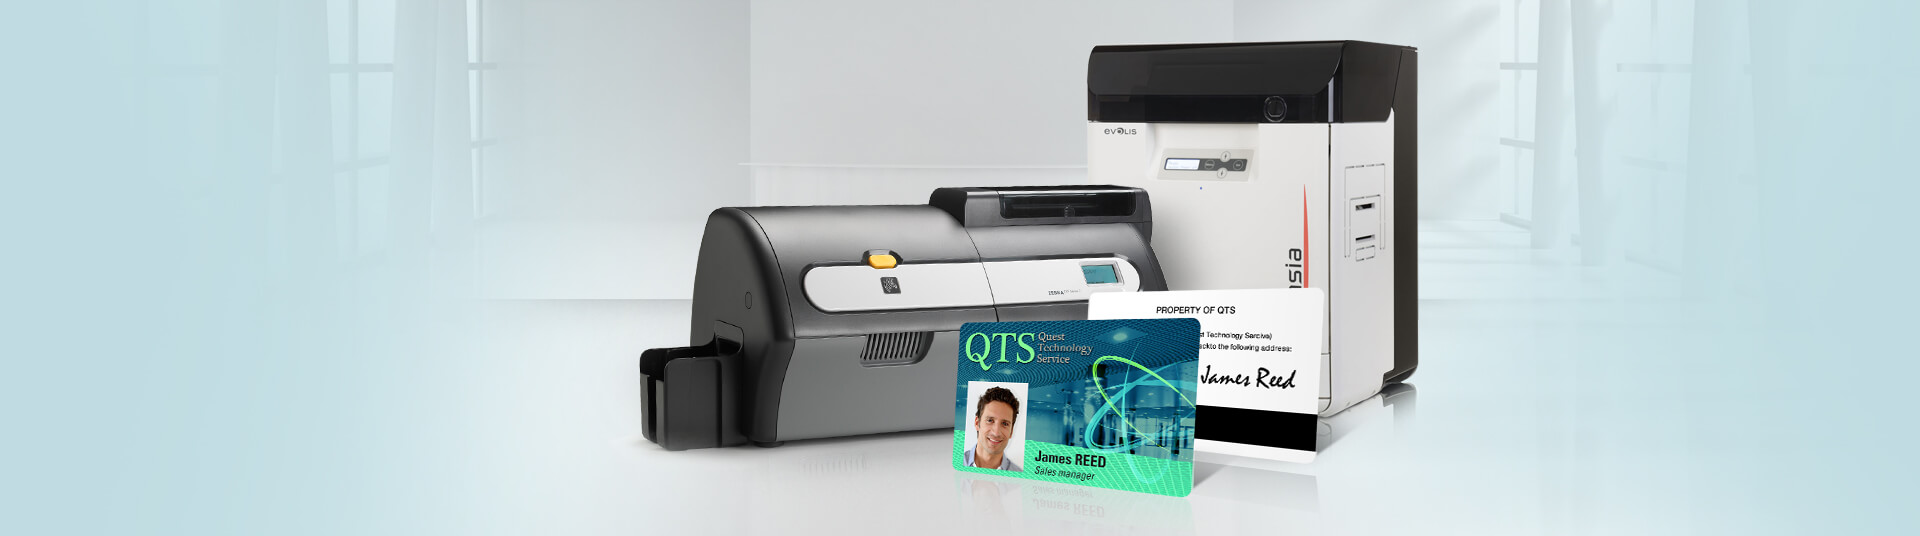 Printers Dual-sided Alphacard Card Id